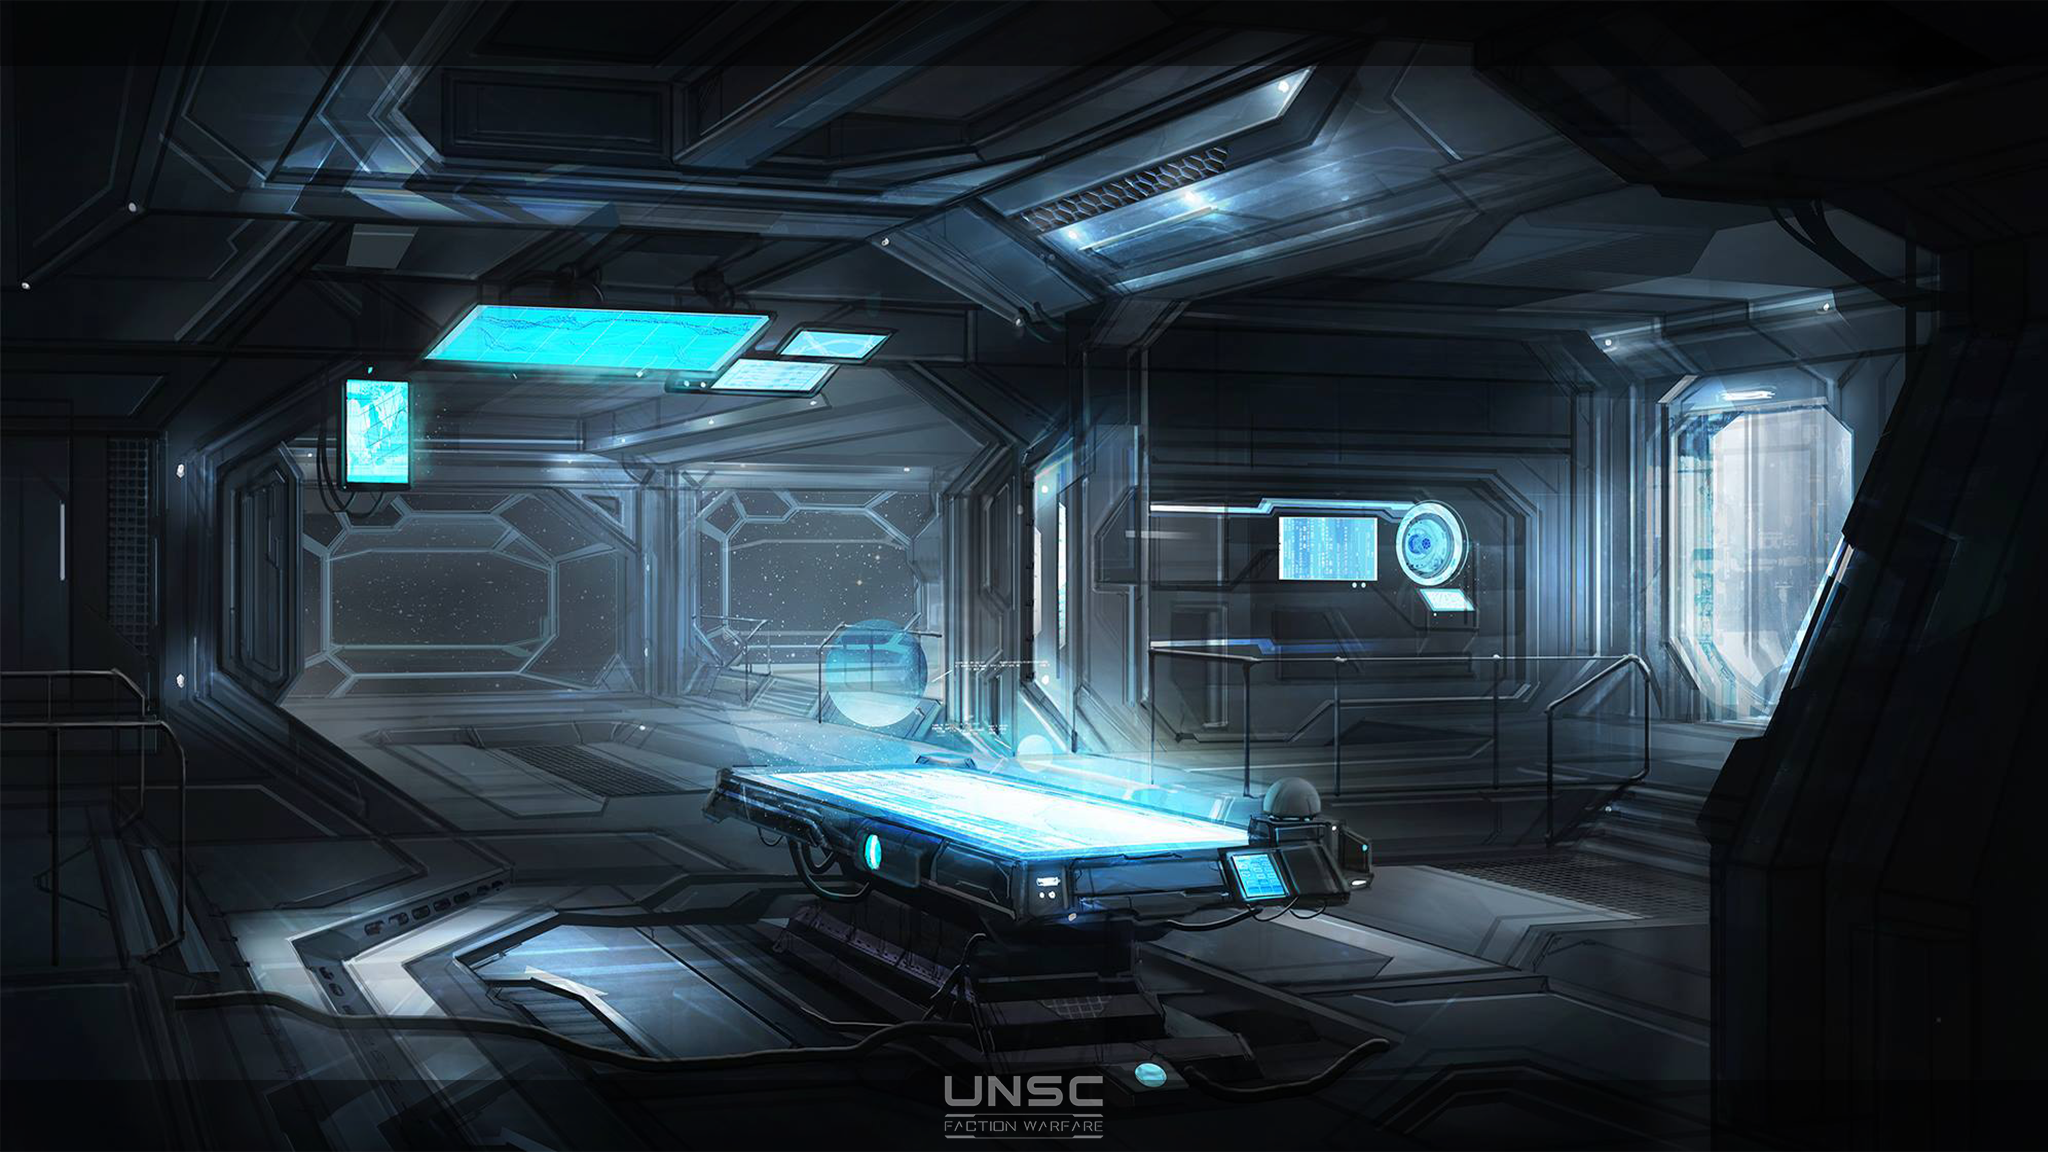 Concept Art - UNSC Ship Bridge image - Indie DB